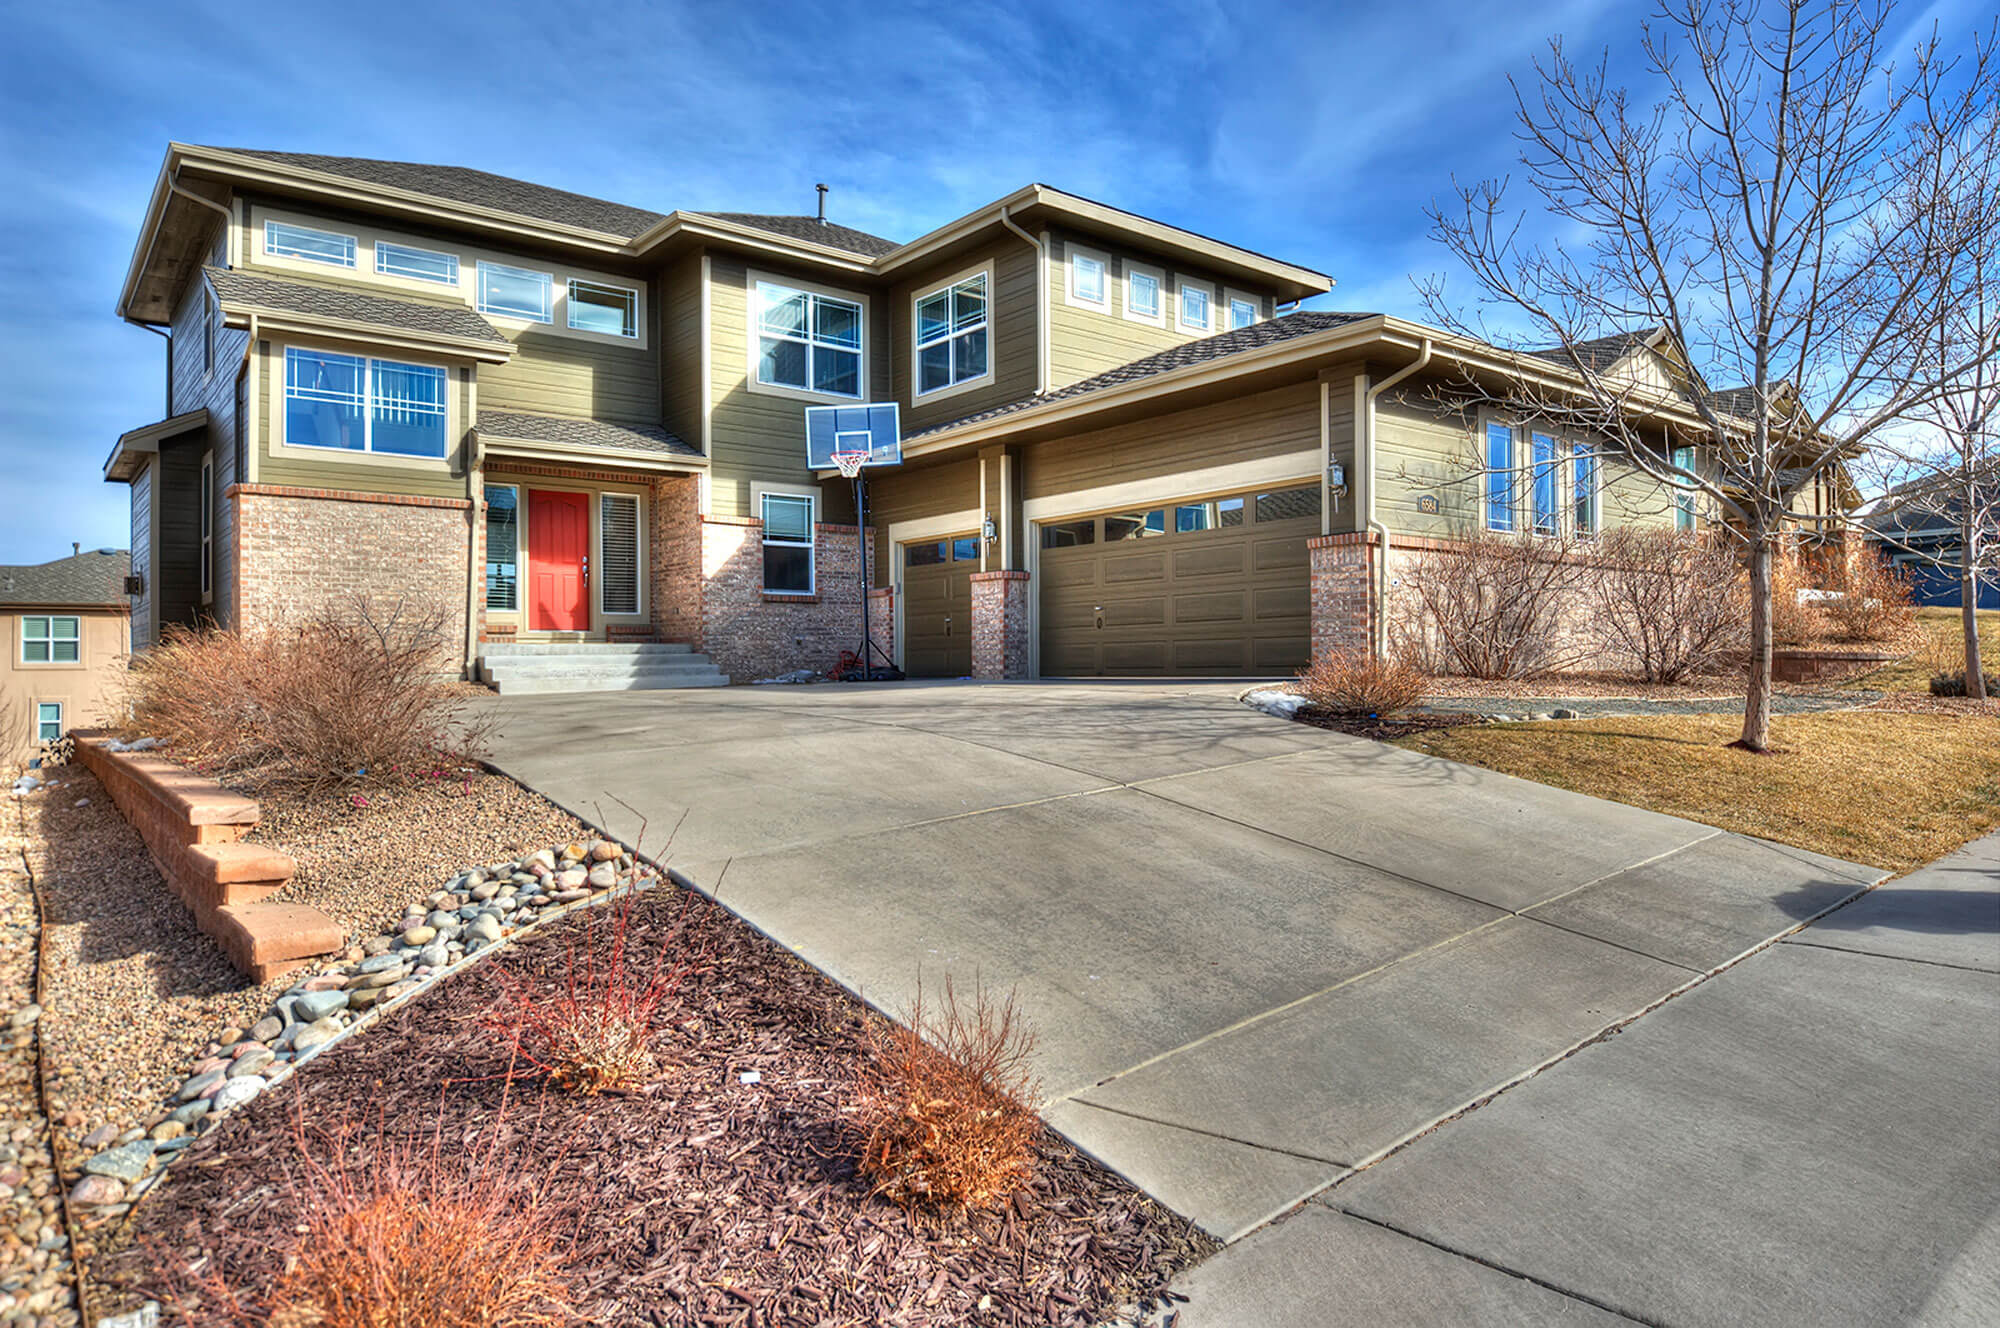 Home for sale in the exclusive community of Vintage reserve.